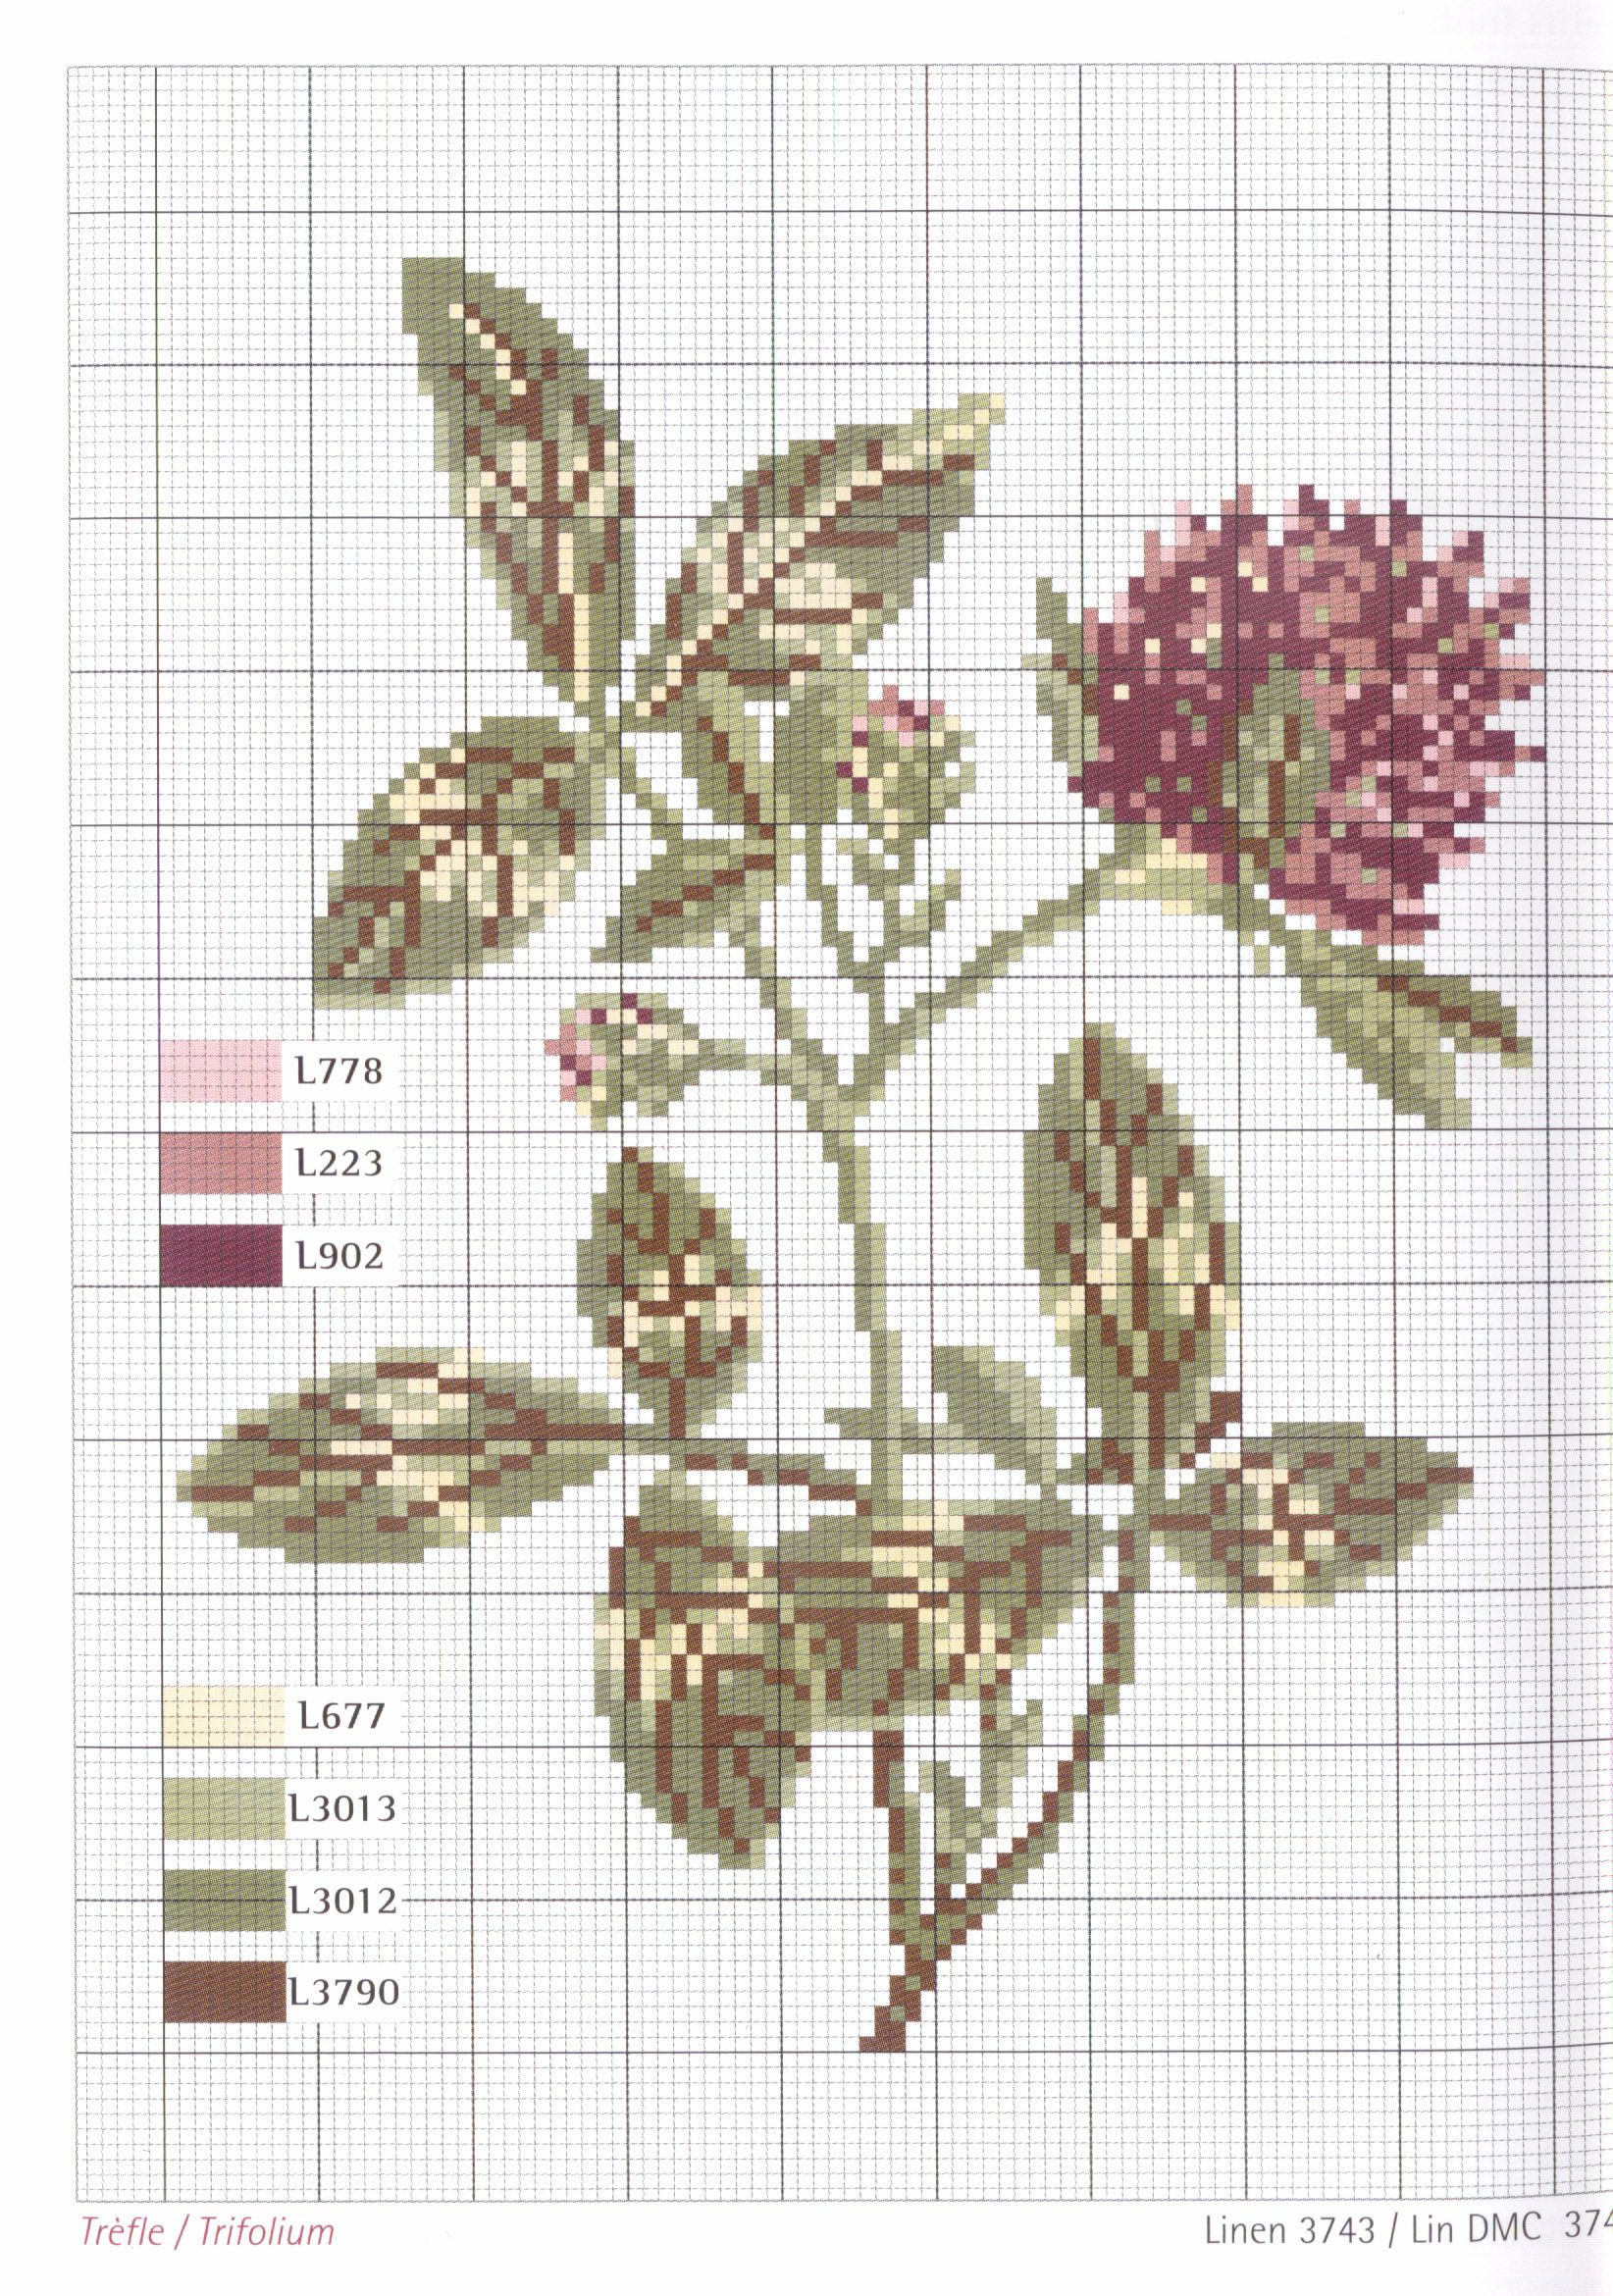 Hierbas | DIY: Cross Stitch | Pinterest | Hierba, Punto de cruz y Puntos